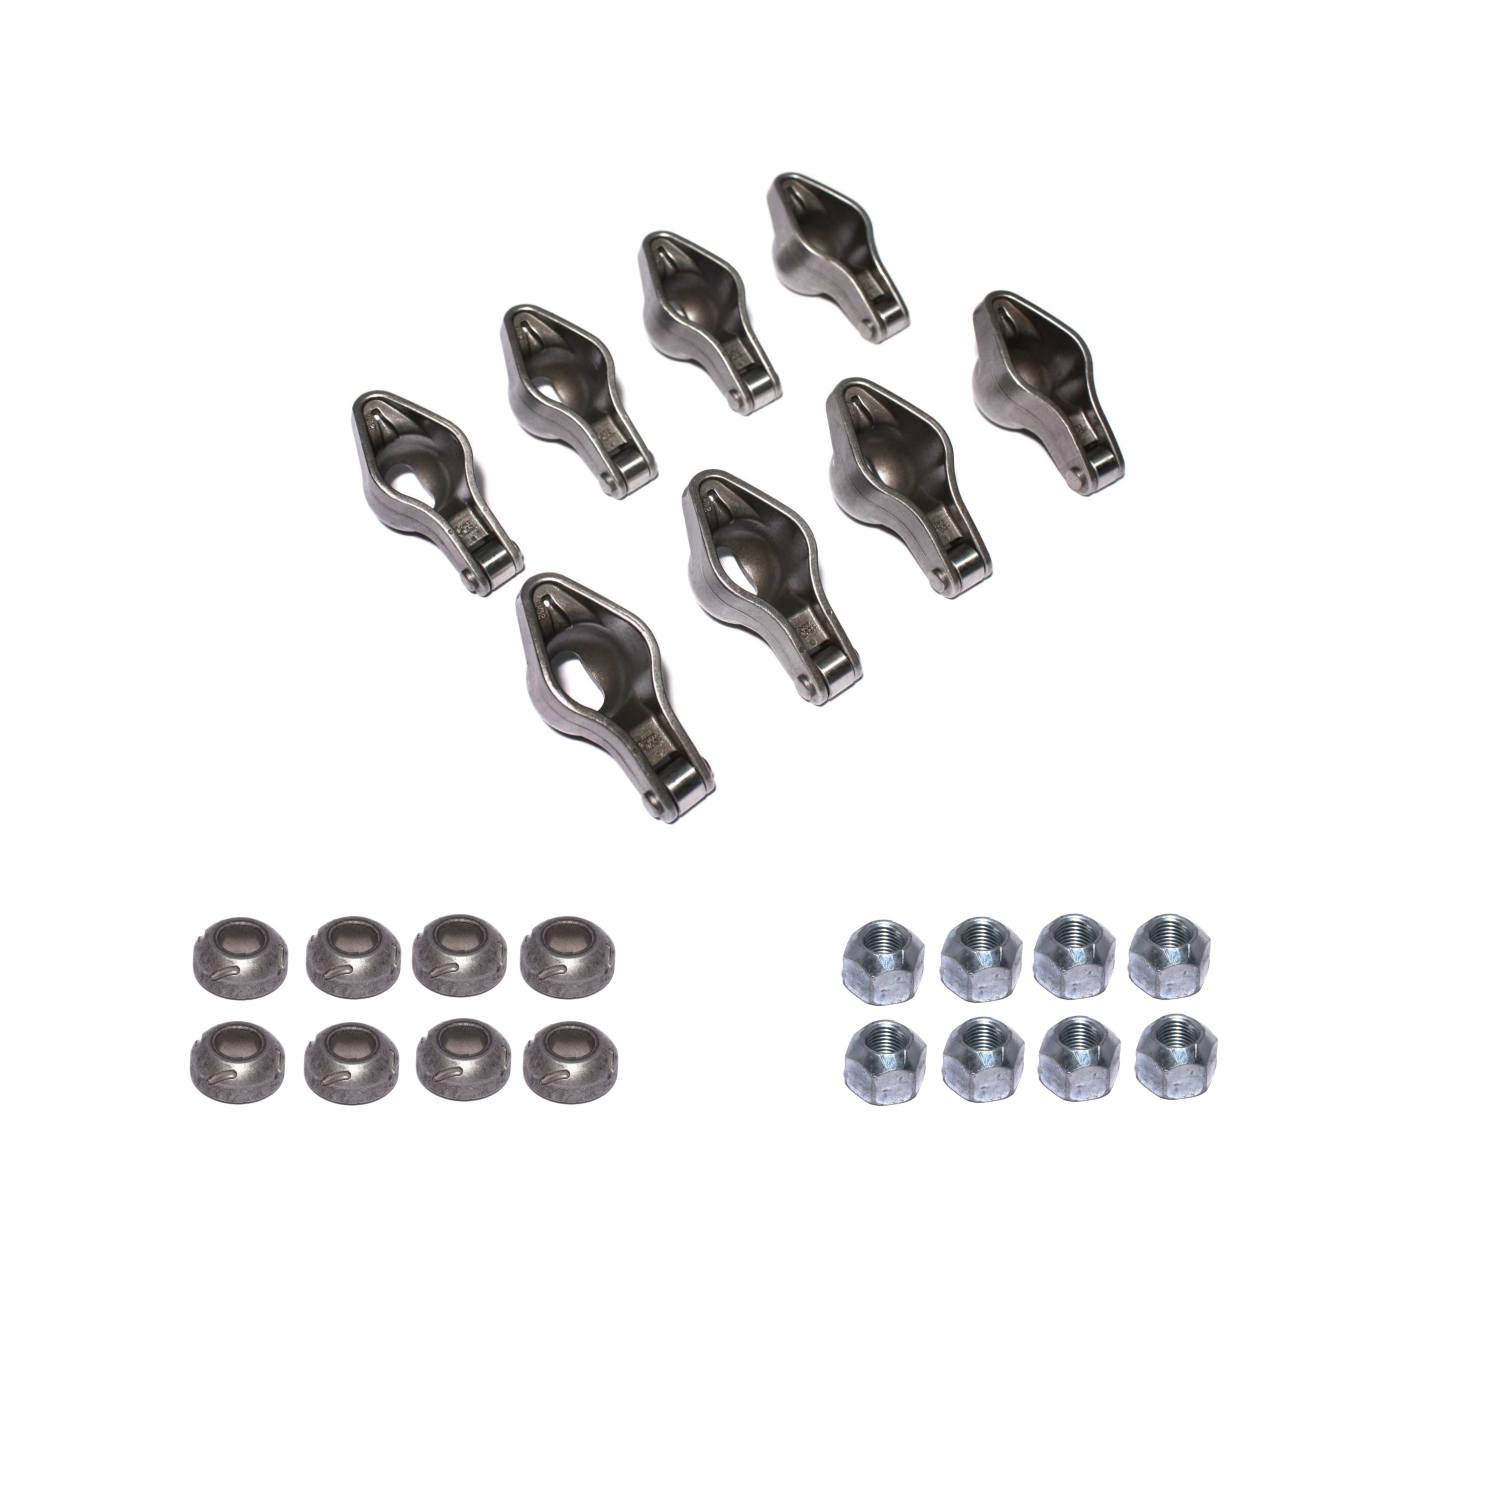 Comp Cams 8 Magnum Roller Rockers Rocker Arms